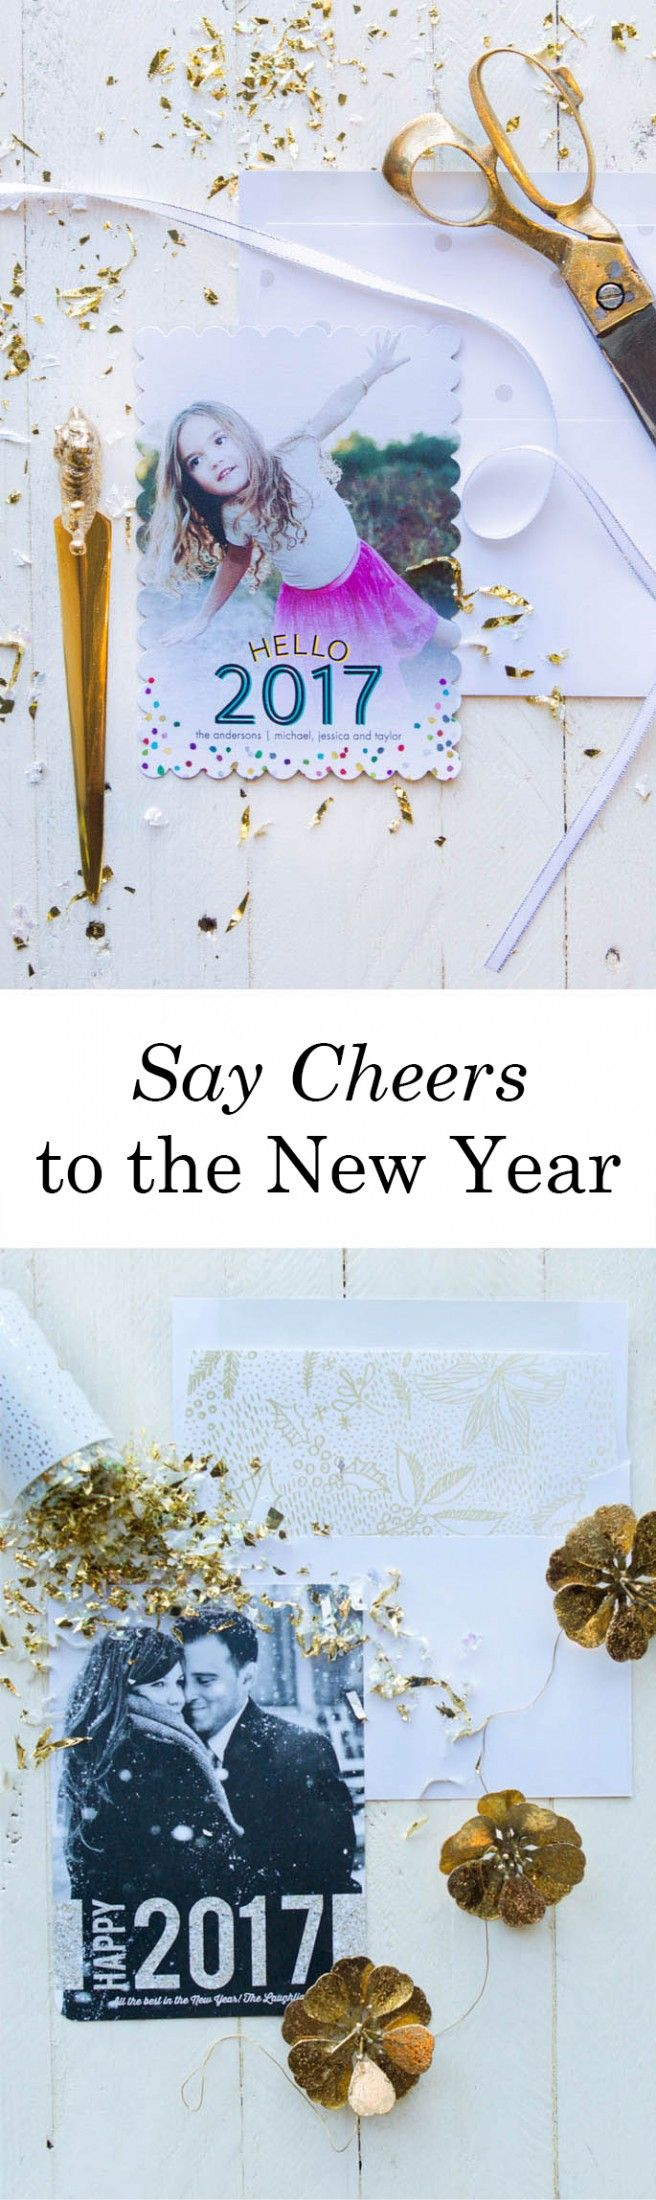 [ad] Ring in the New Year with customized holiday cards from Tiny Prints.